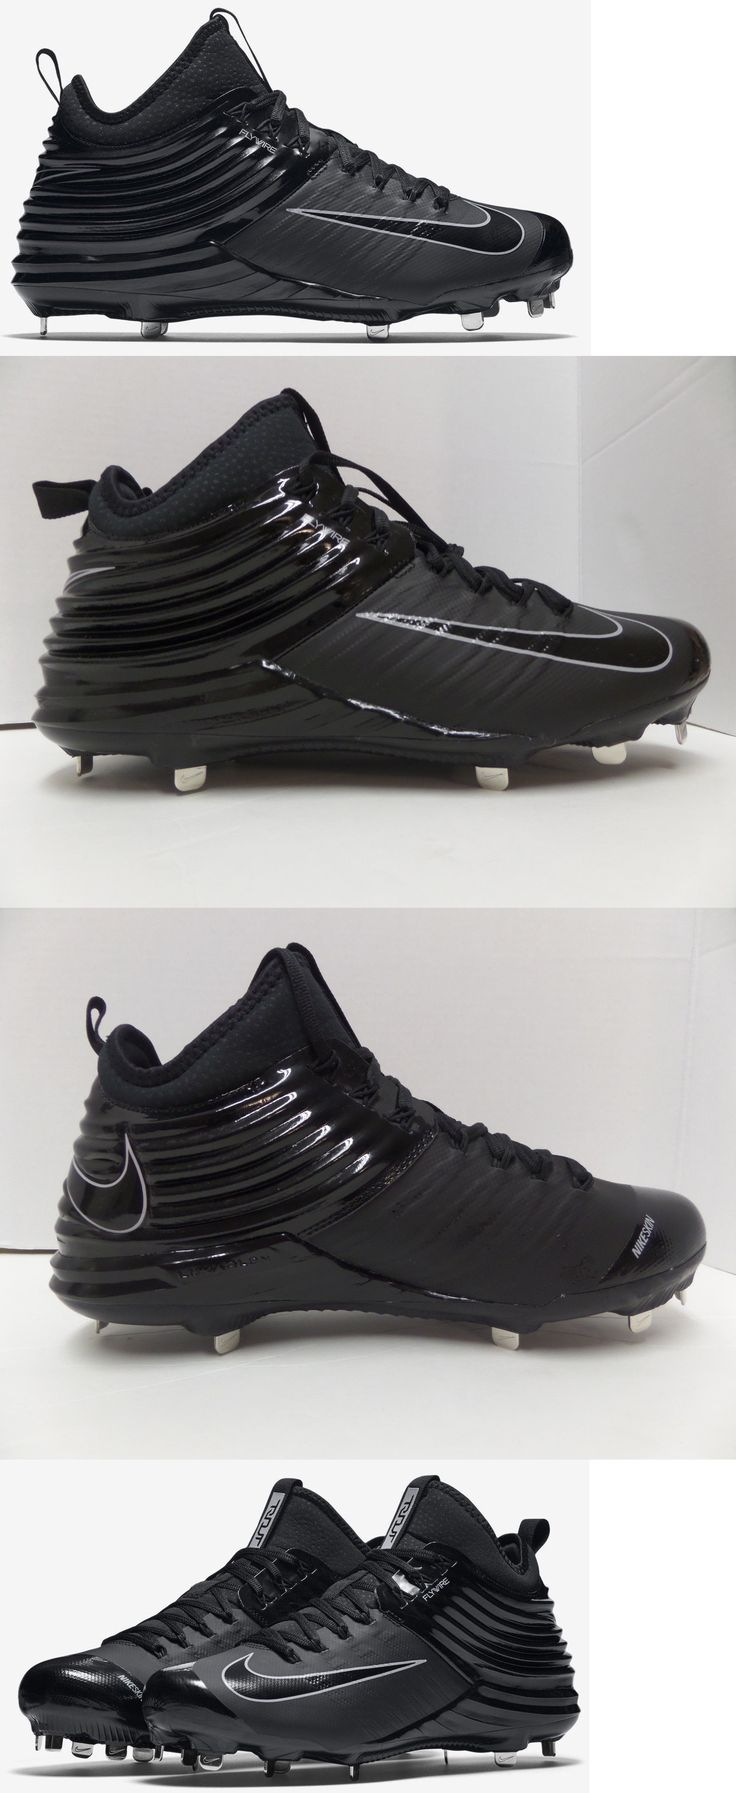 Mens 159059: New Nike Lunar Trout 2 Metal Baseball Cleats Black Black 807127-002 Size 8 -> BUY IT NOW ONLY: $32.9 on eBay!